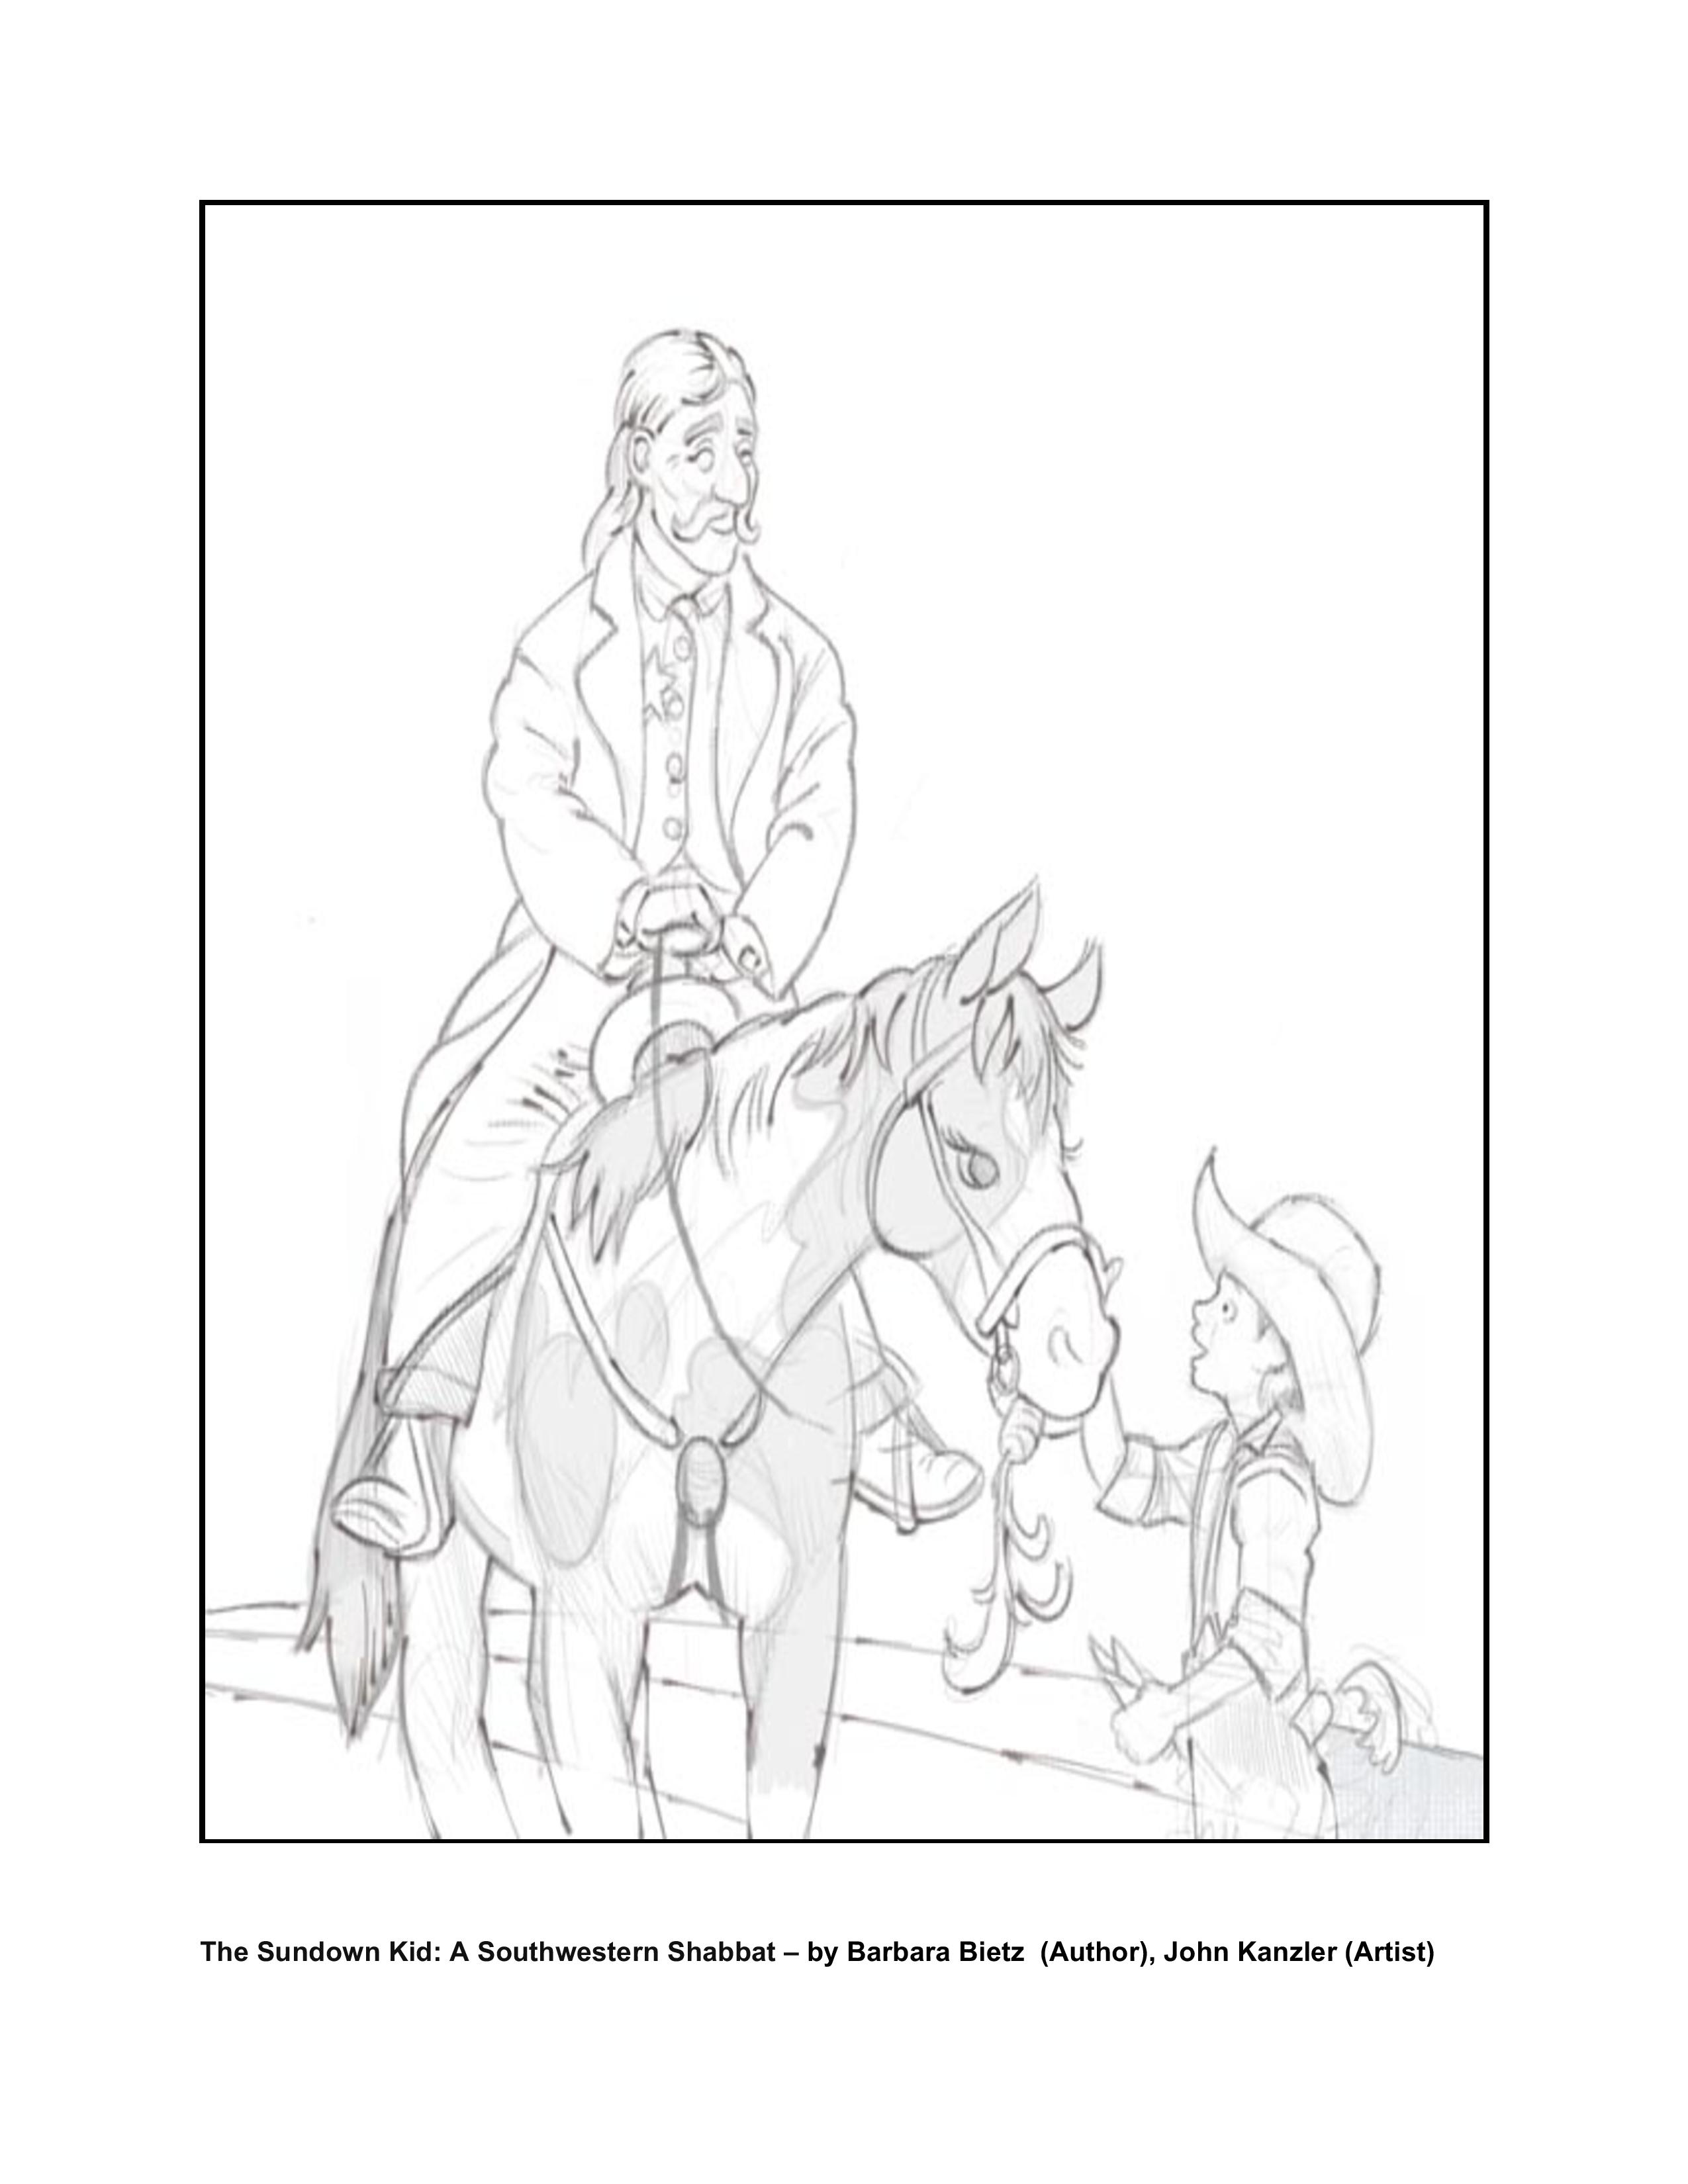 the sundown kid coloring page 2 - Kid Coloring Pictures 2